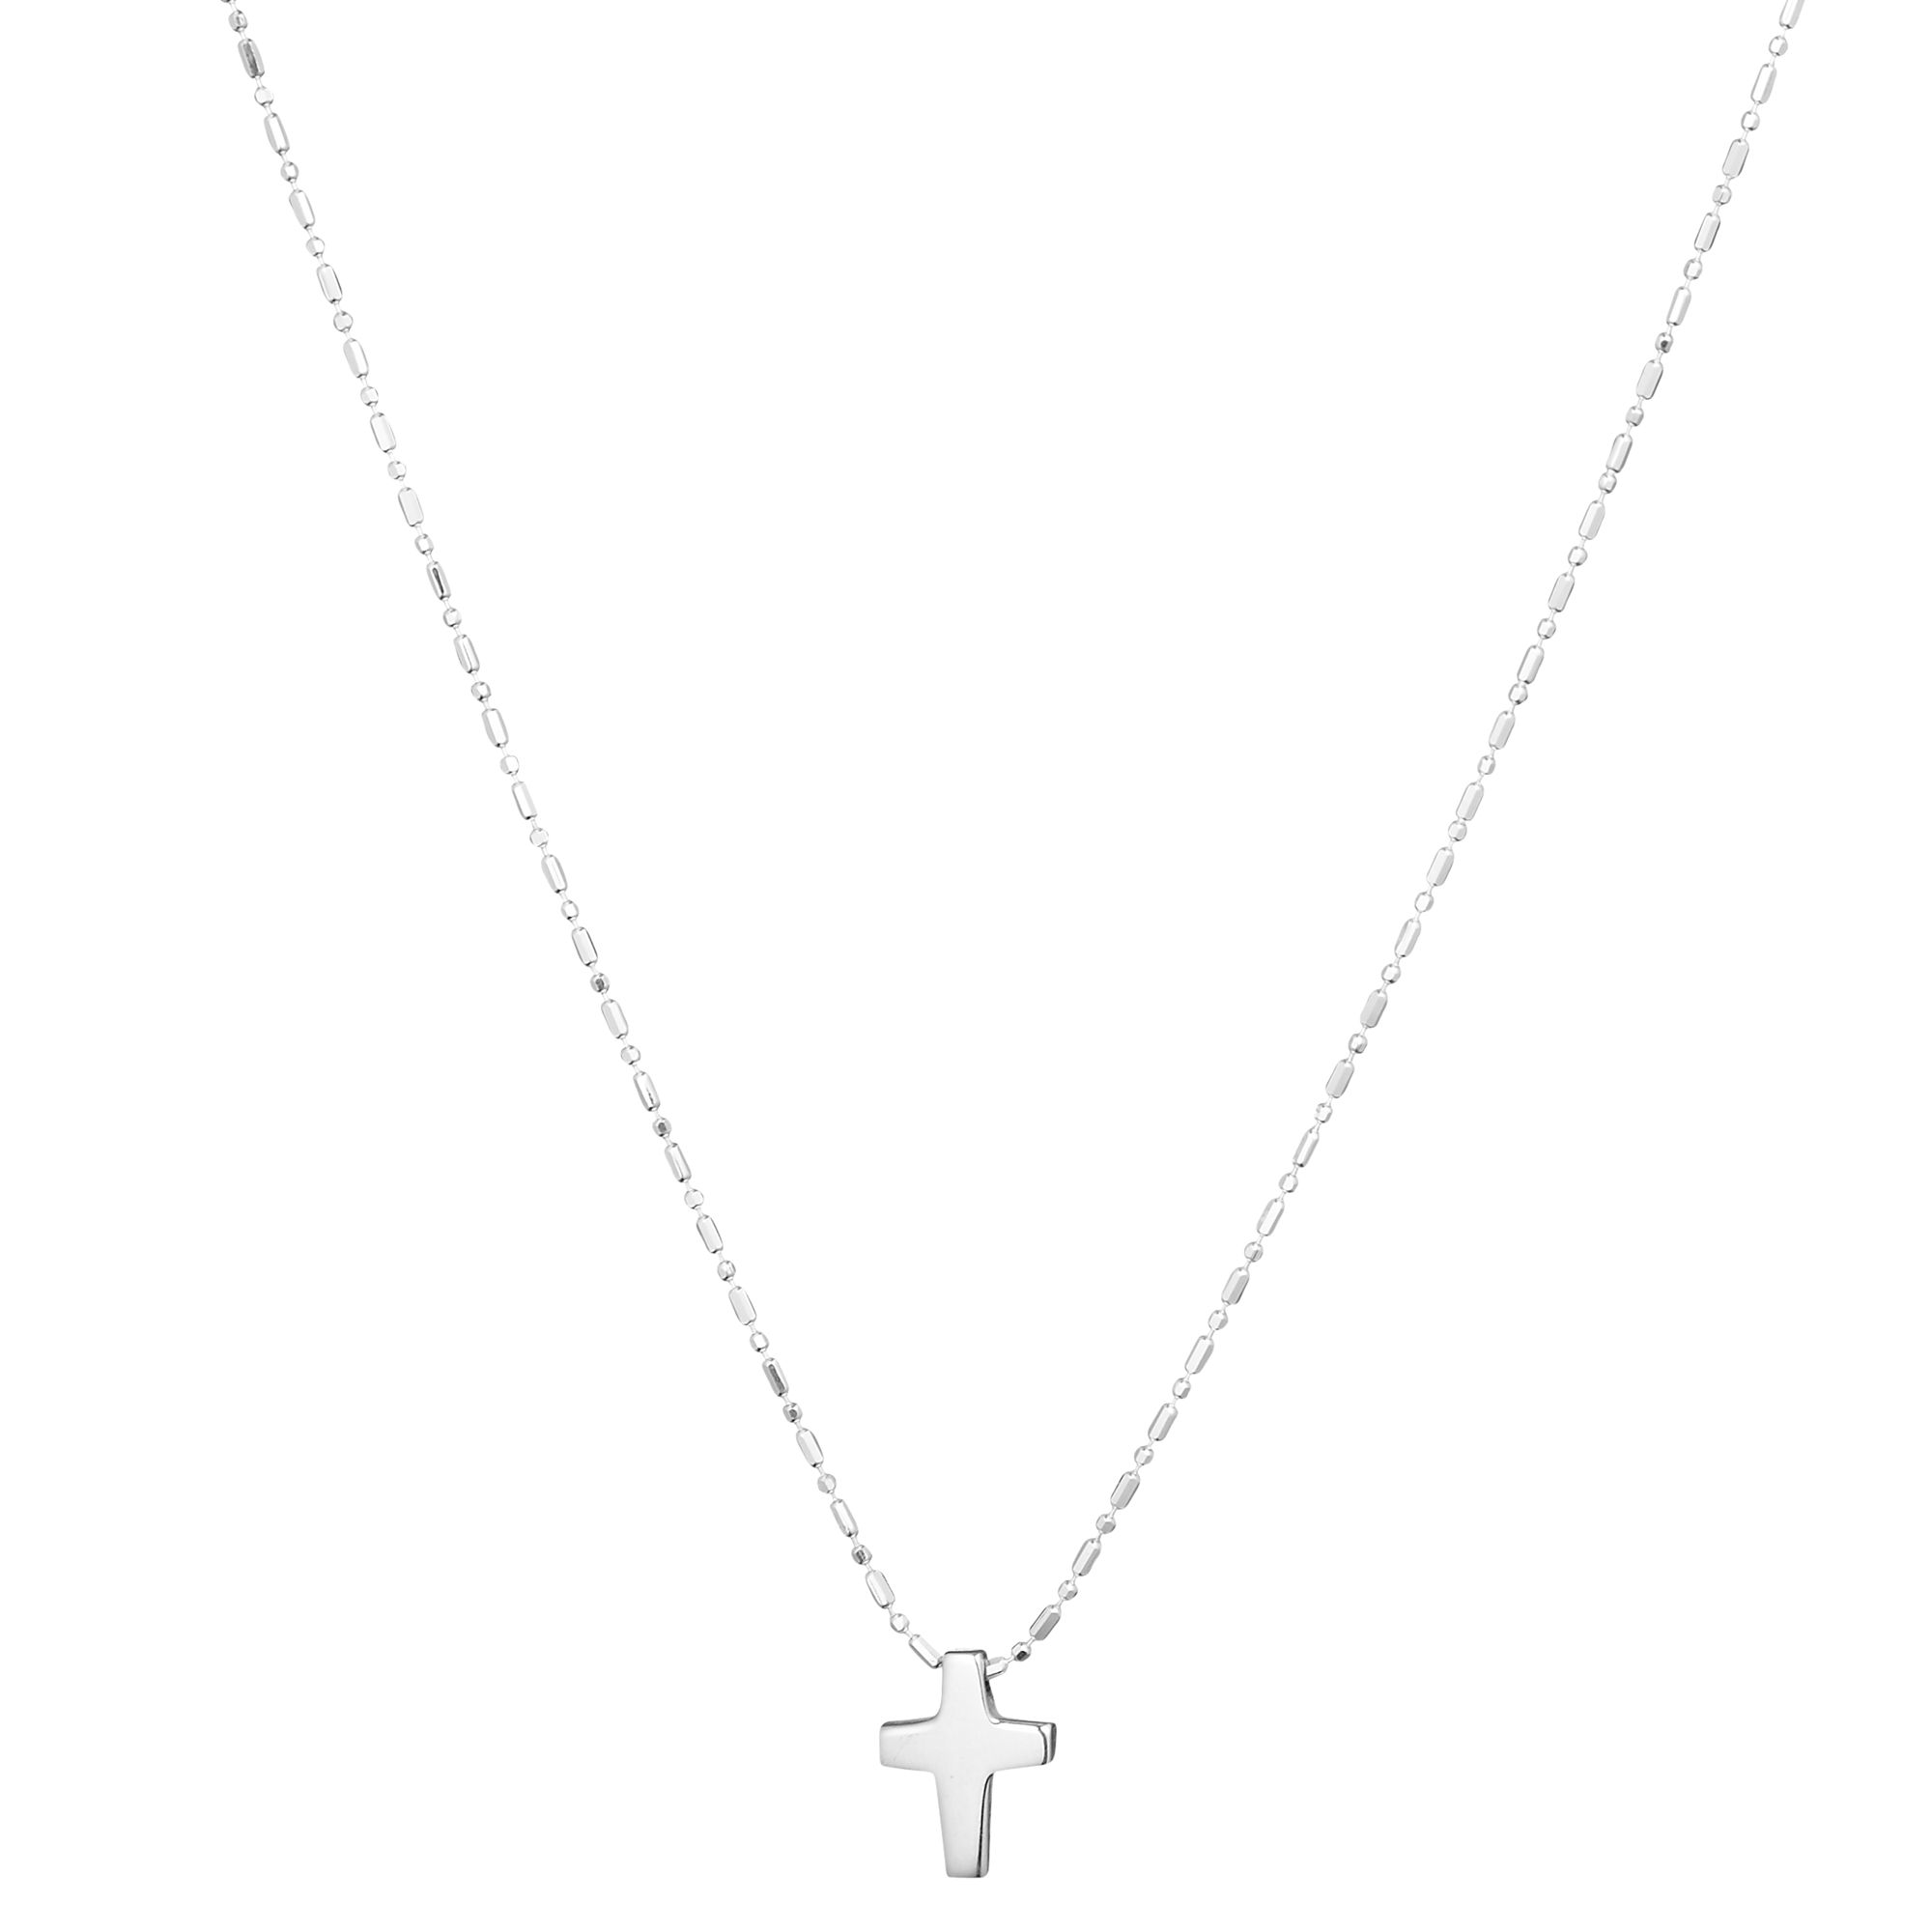 Tales from the Earth Cross Necklace, Silver